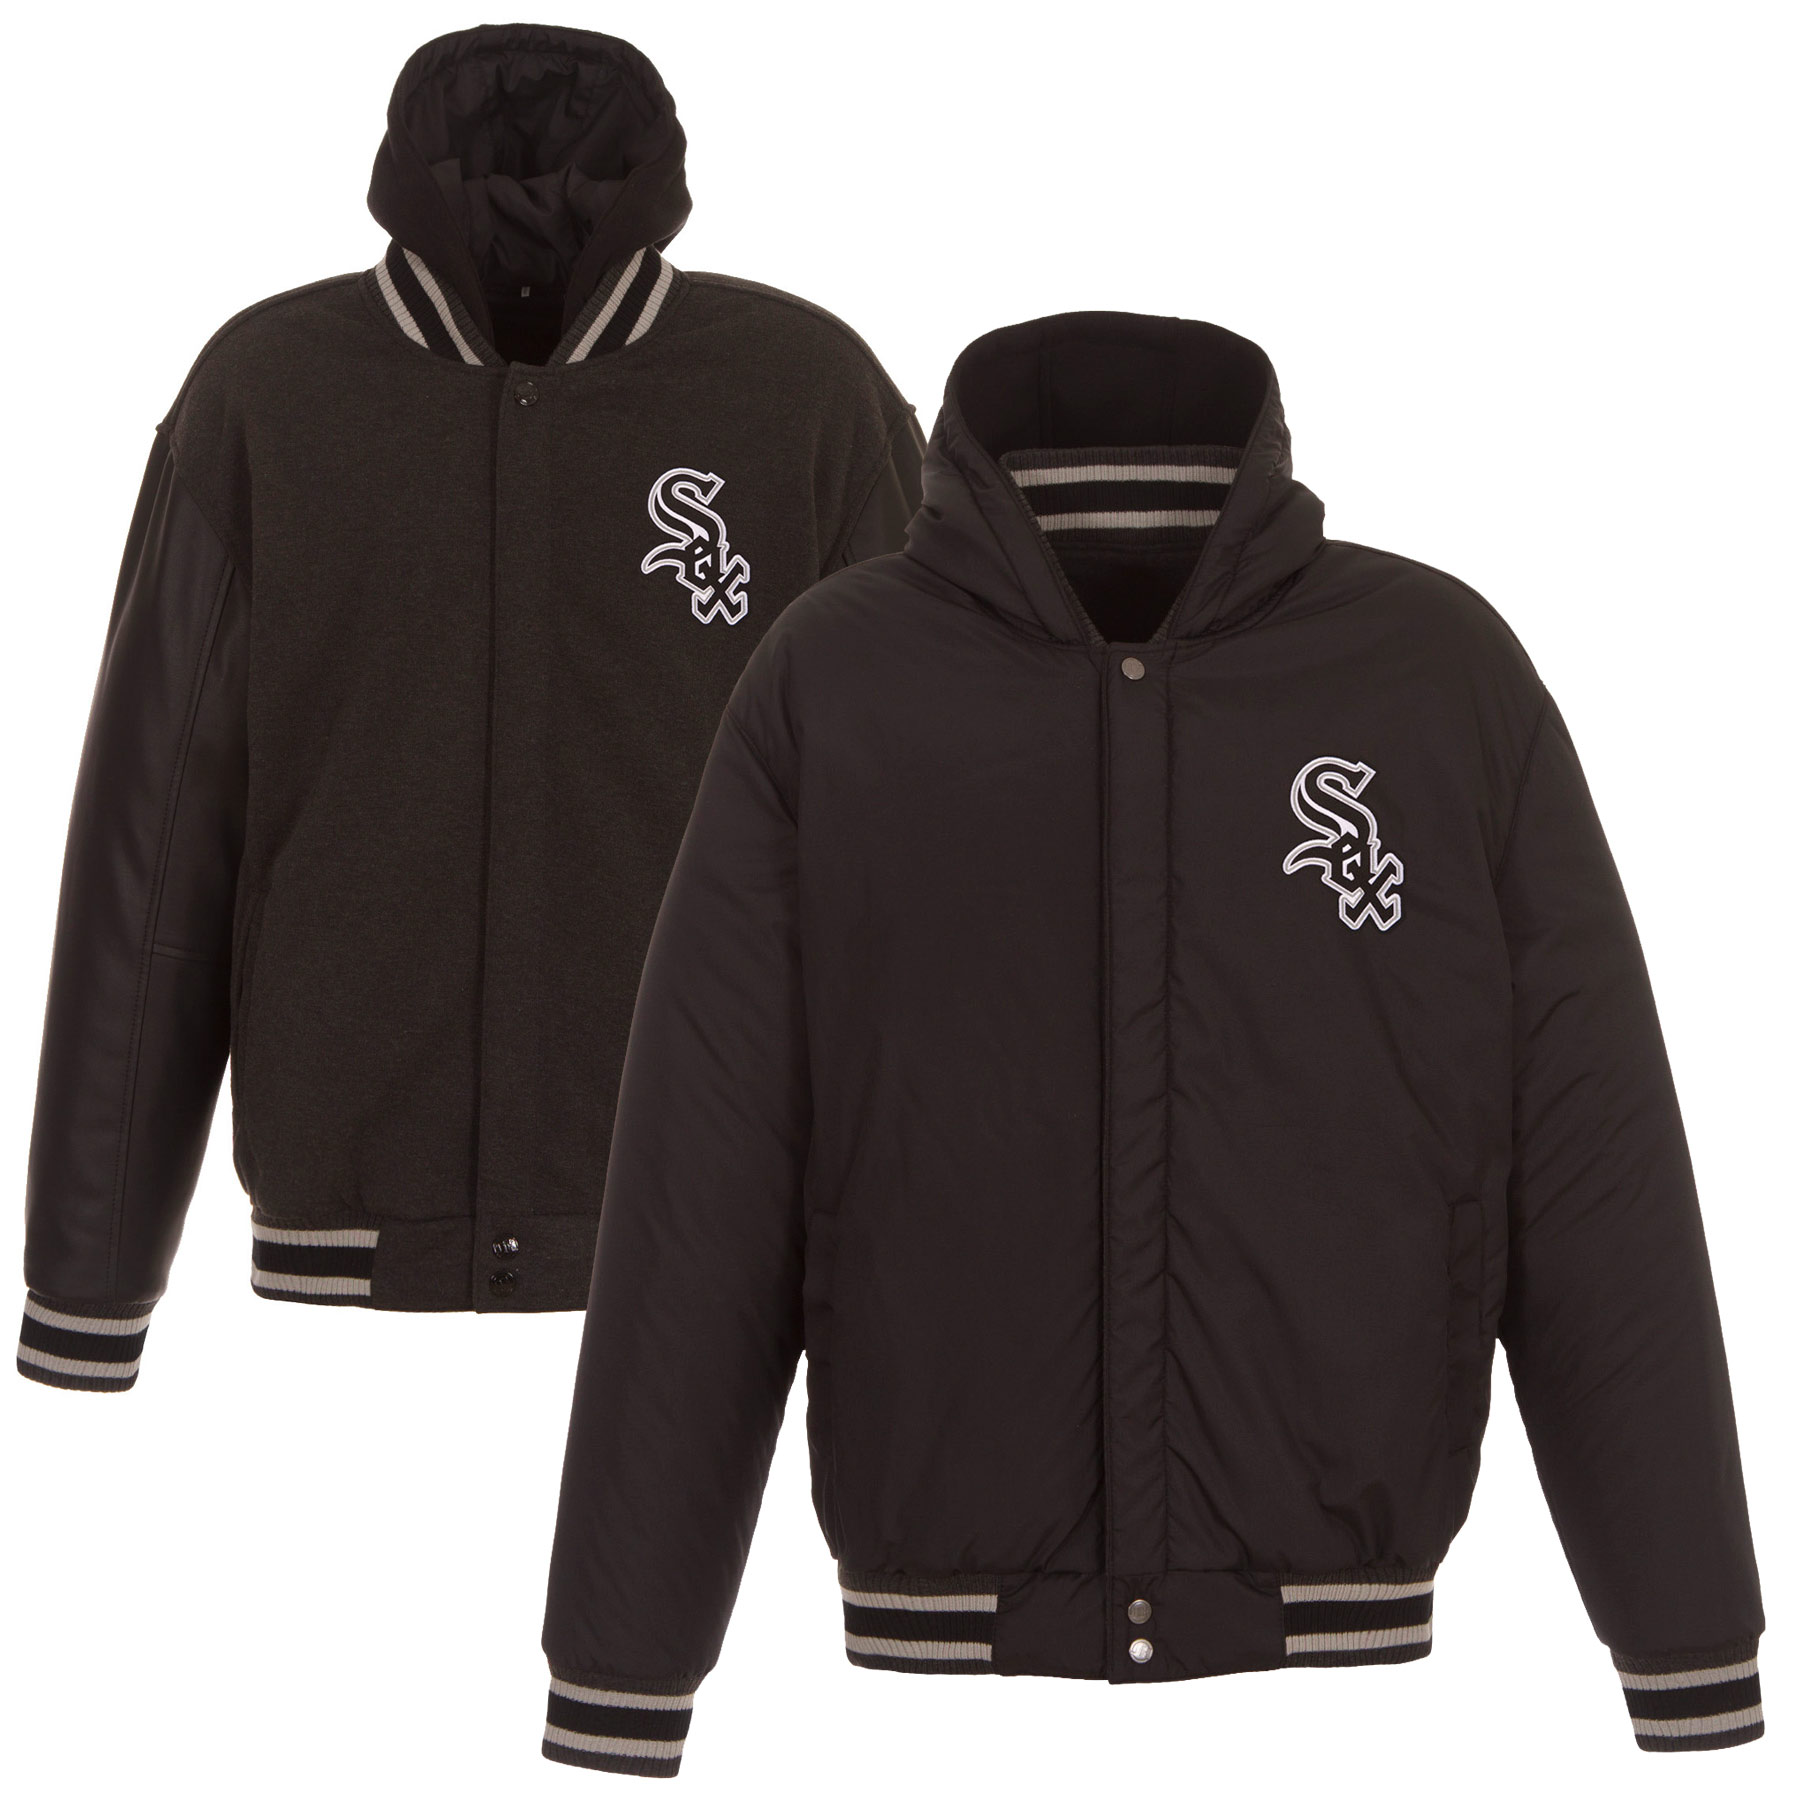 Chicago White Sox JH Design Heavyweight Reversible Full Snap Hoodie - Charcoal